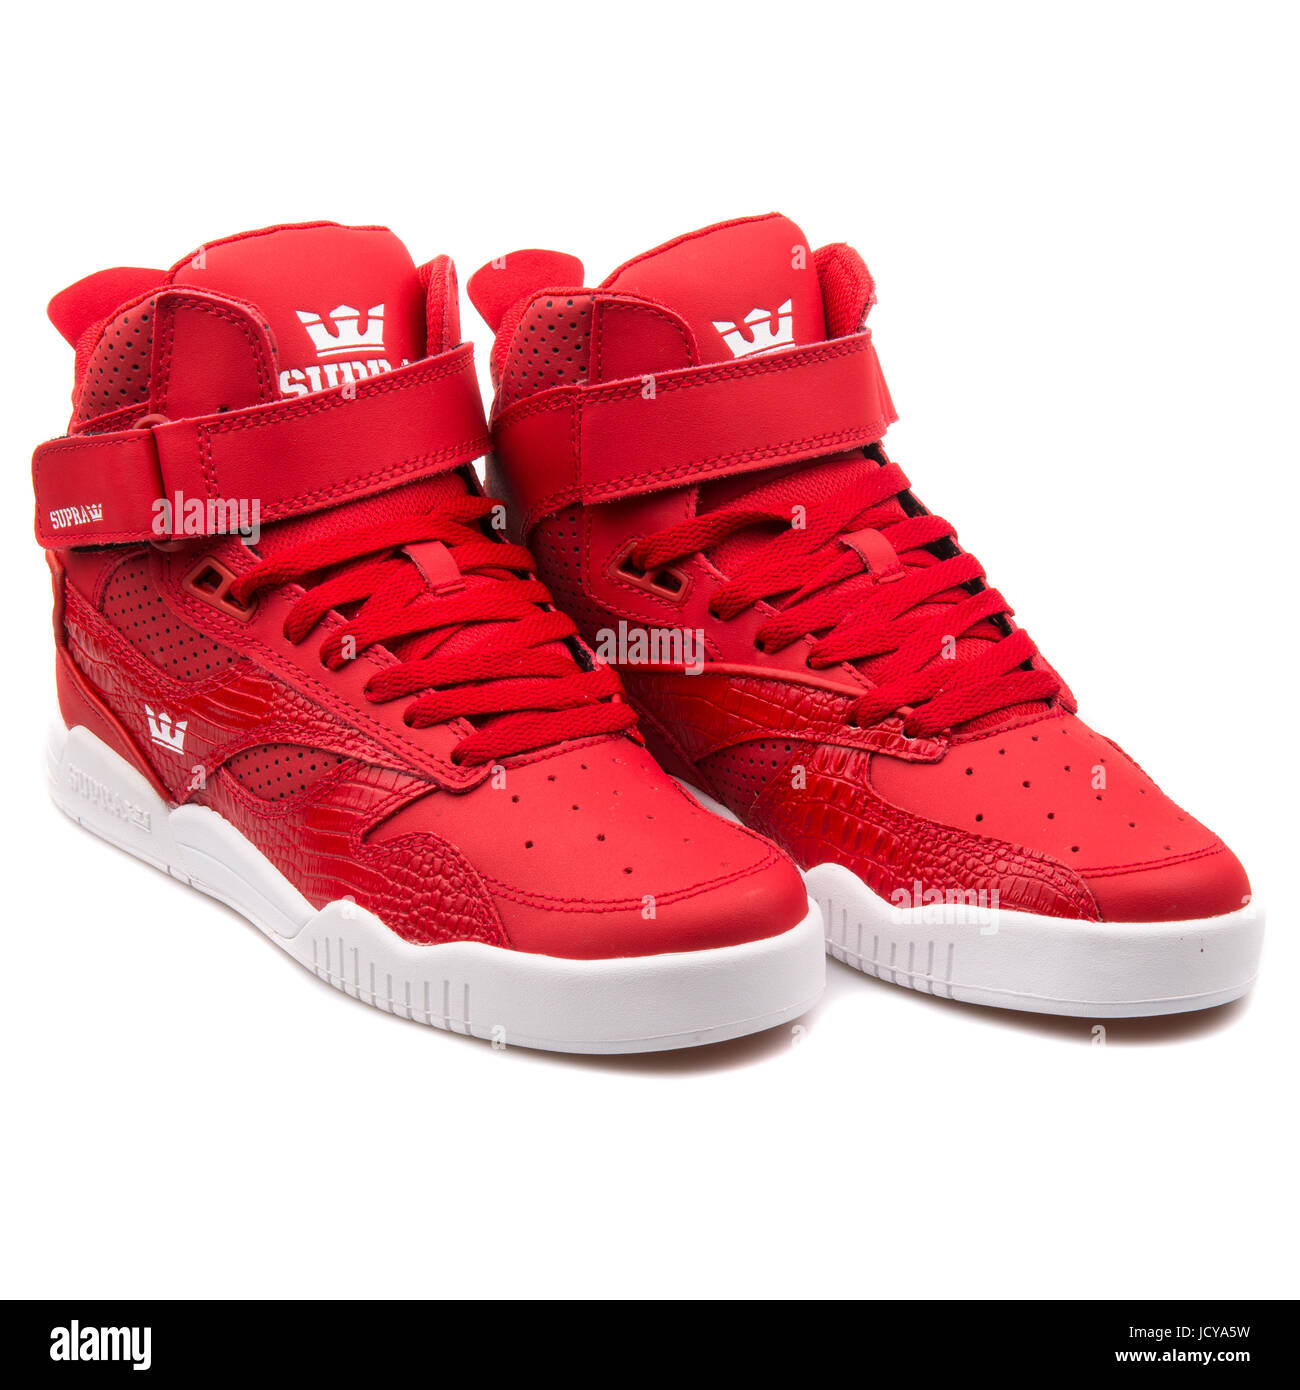 brand new 7a6ae 70257 Supra Bleeker Cardinal Red and White Men s Sports Shoes - S02108 - Stock  Image